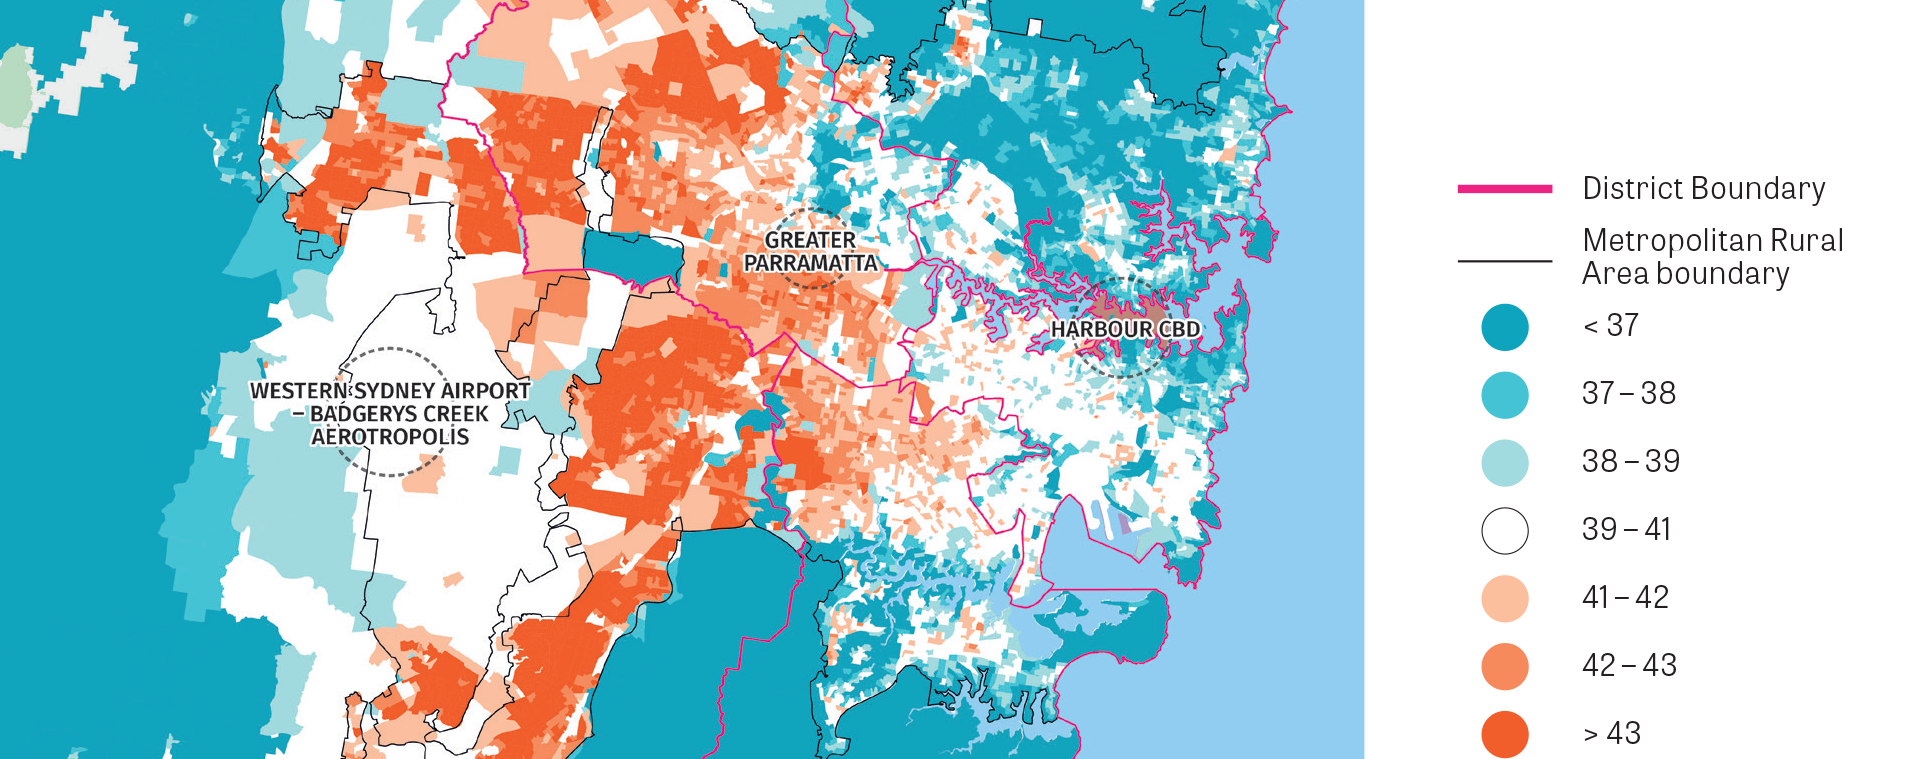 A stylised map focussed on the main urban areas in the Greater Sydney Region showing the land surface temperature during a heatwave.